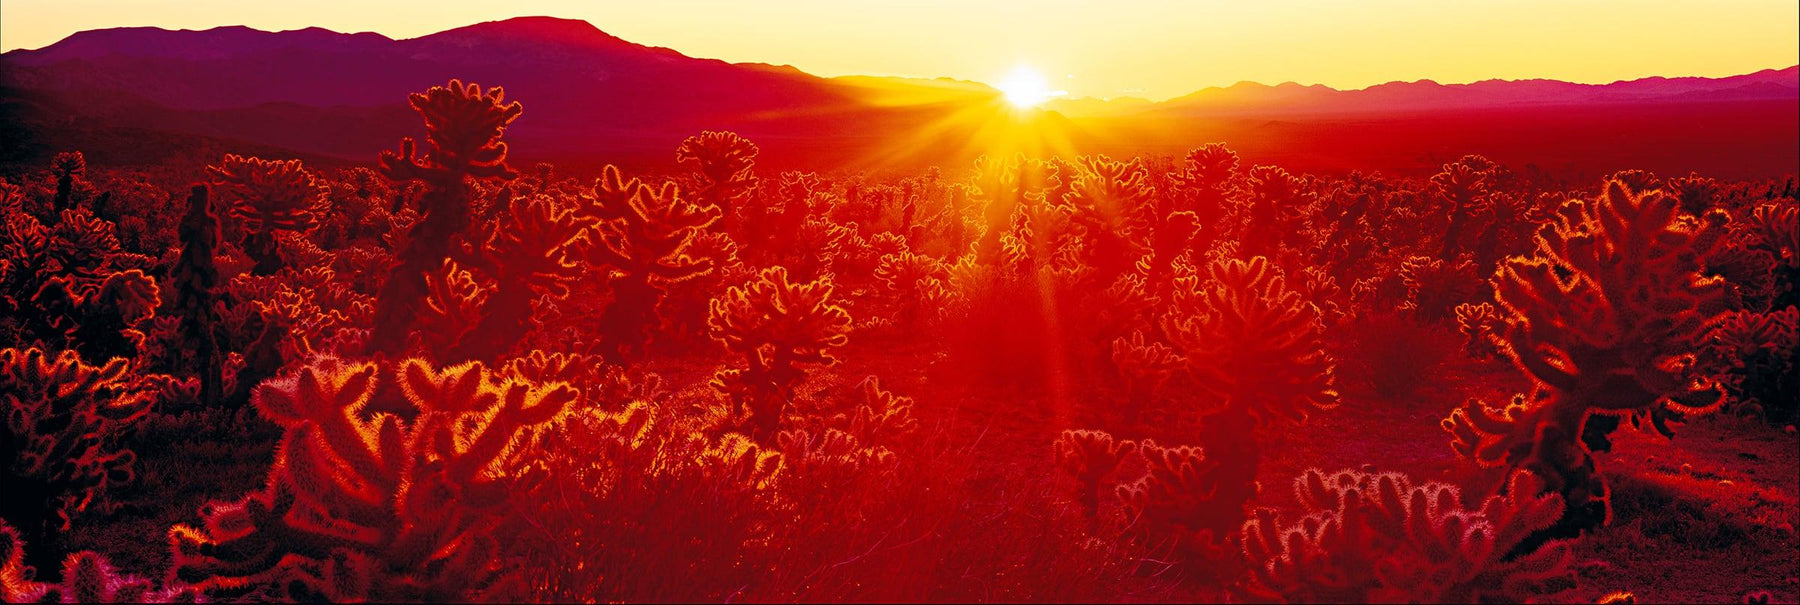 The sun shining on the Joshua tree filled desert of Joshua Tree National Park California as it rises over the mountains